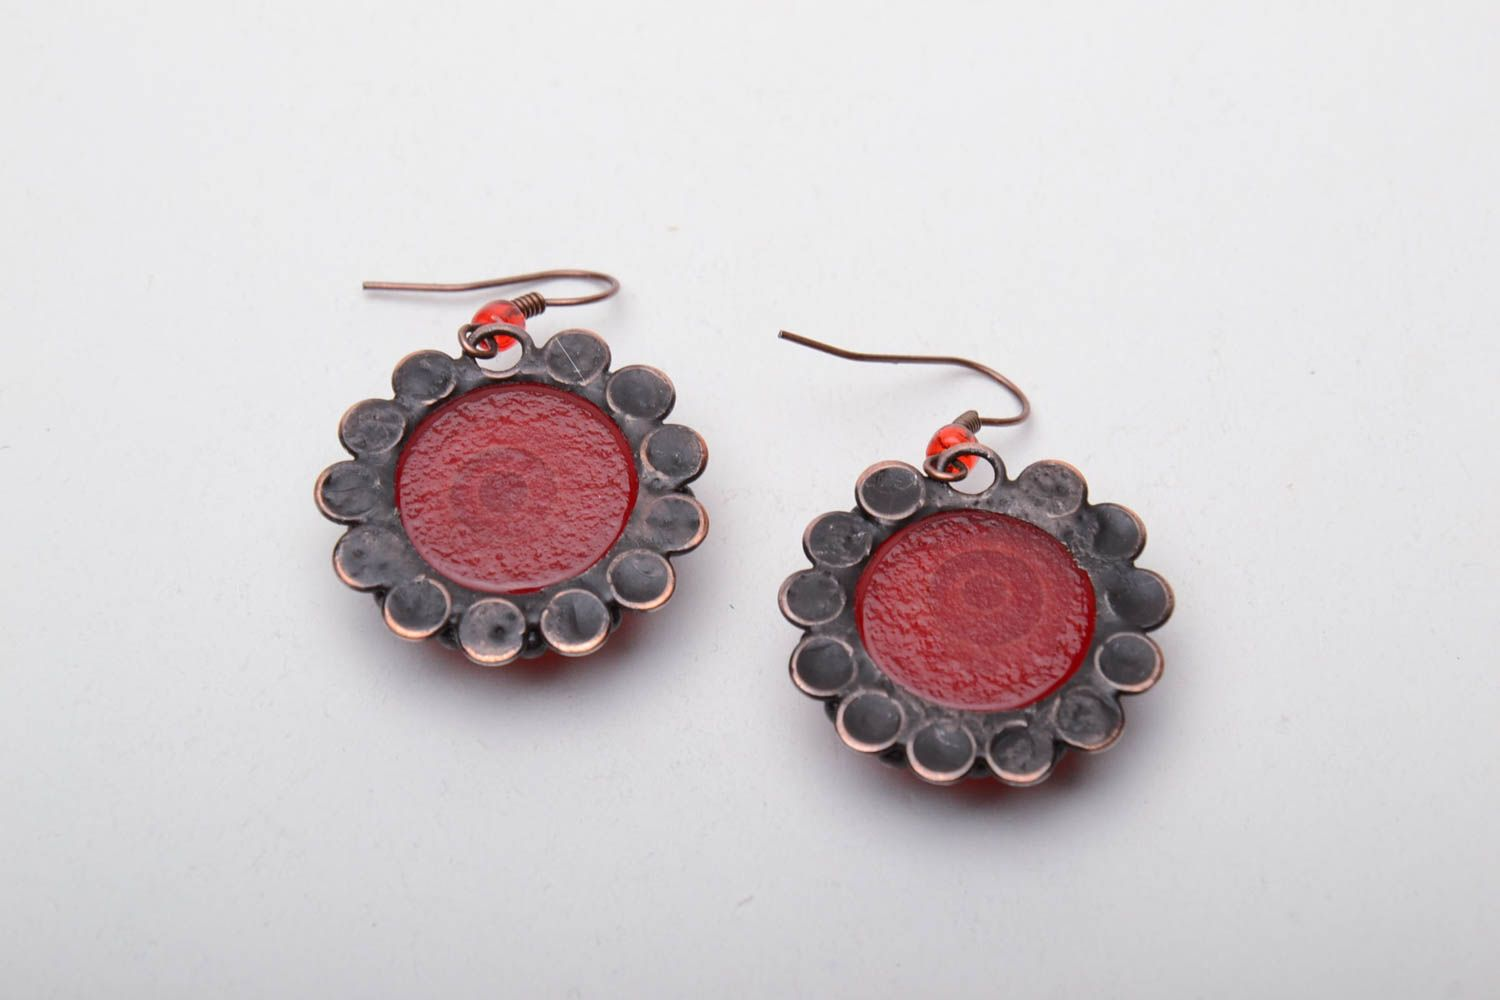 Stained glass earrings photo 4